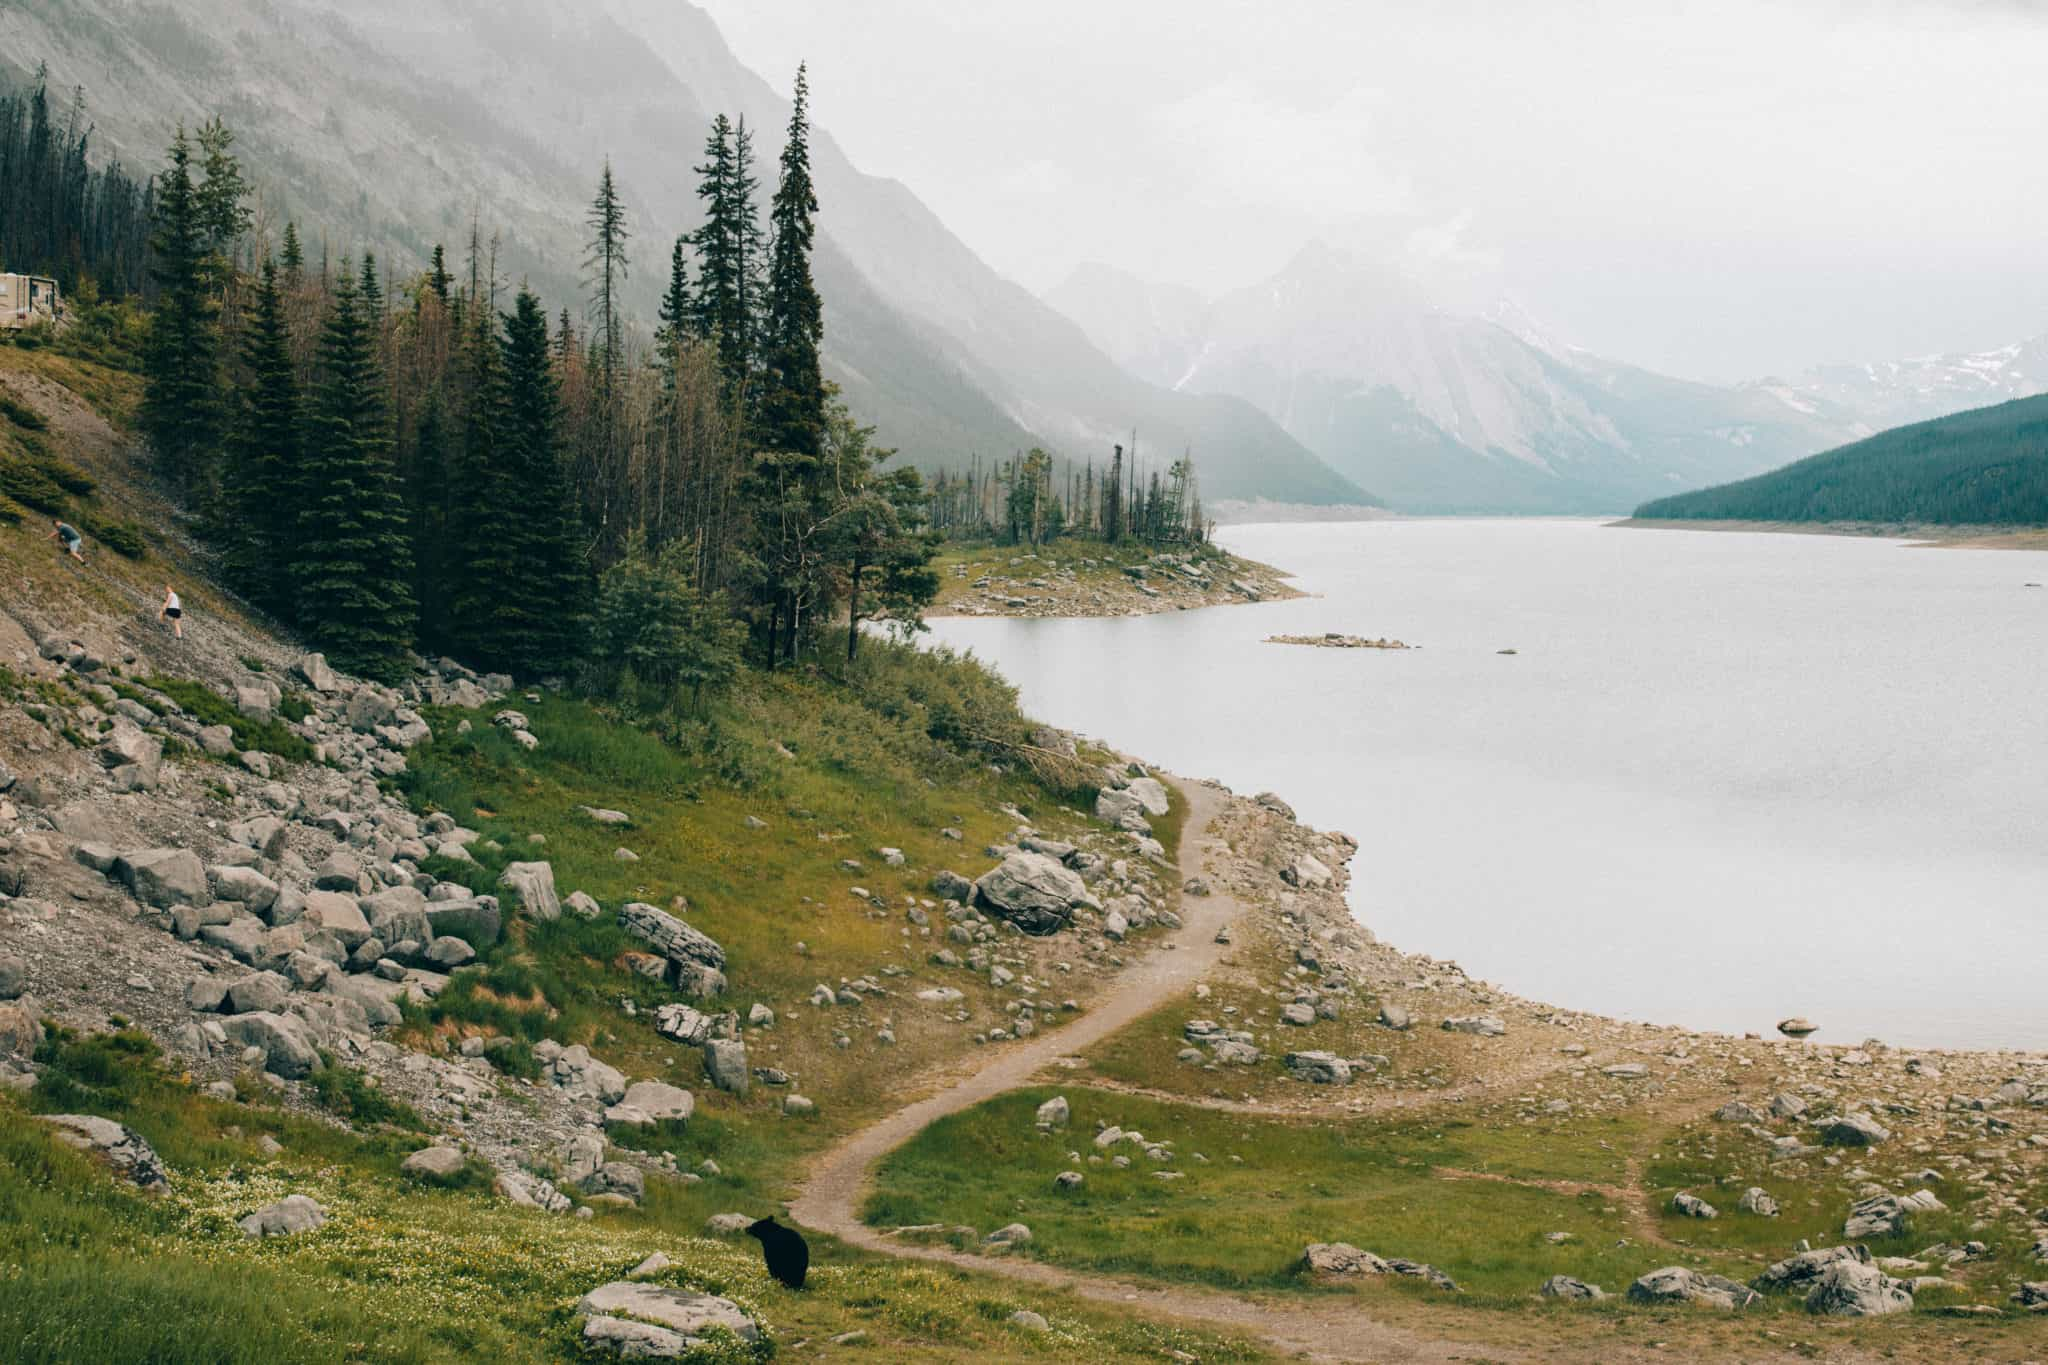 Things to do in Banff - Watch Wildlife